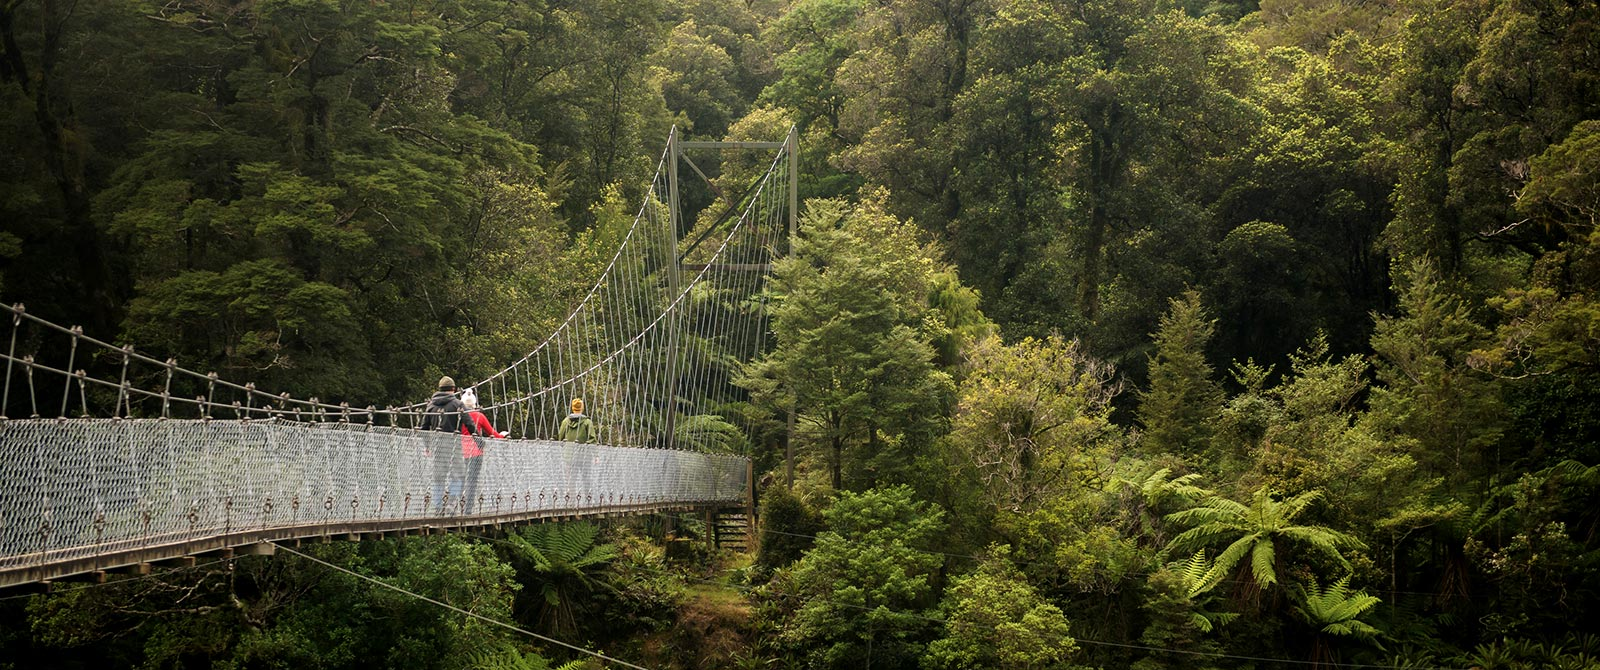 Hollyford Track New Zealand - Swing Bridge Through Native Rainforest